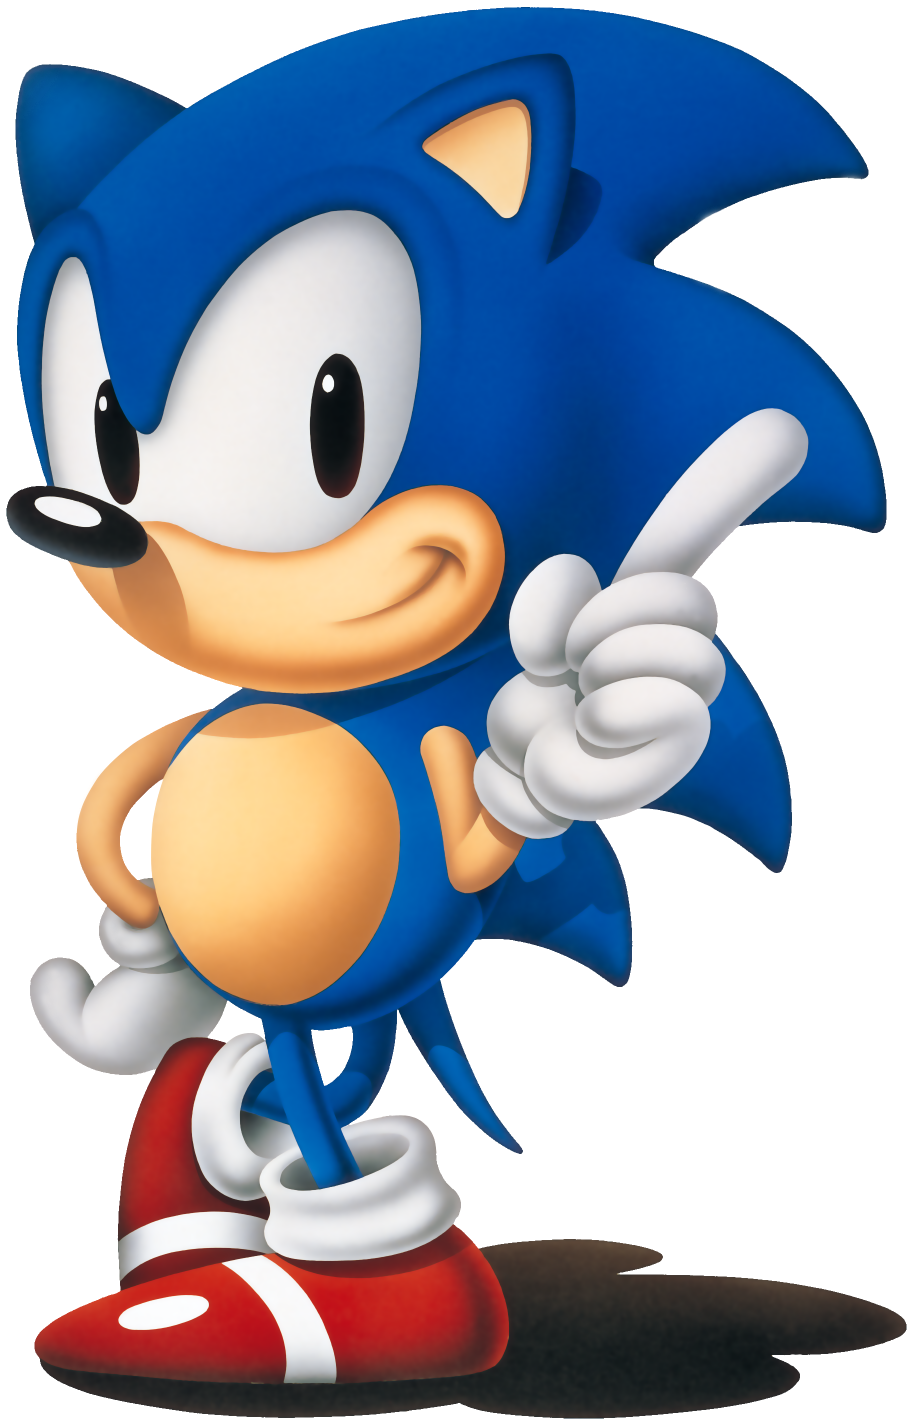 sonice the hedgehog